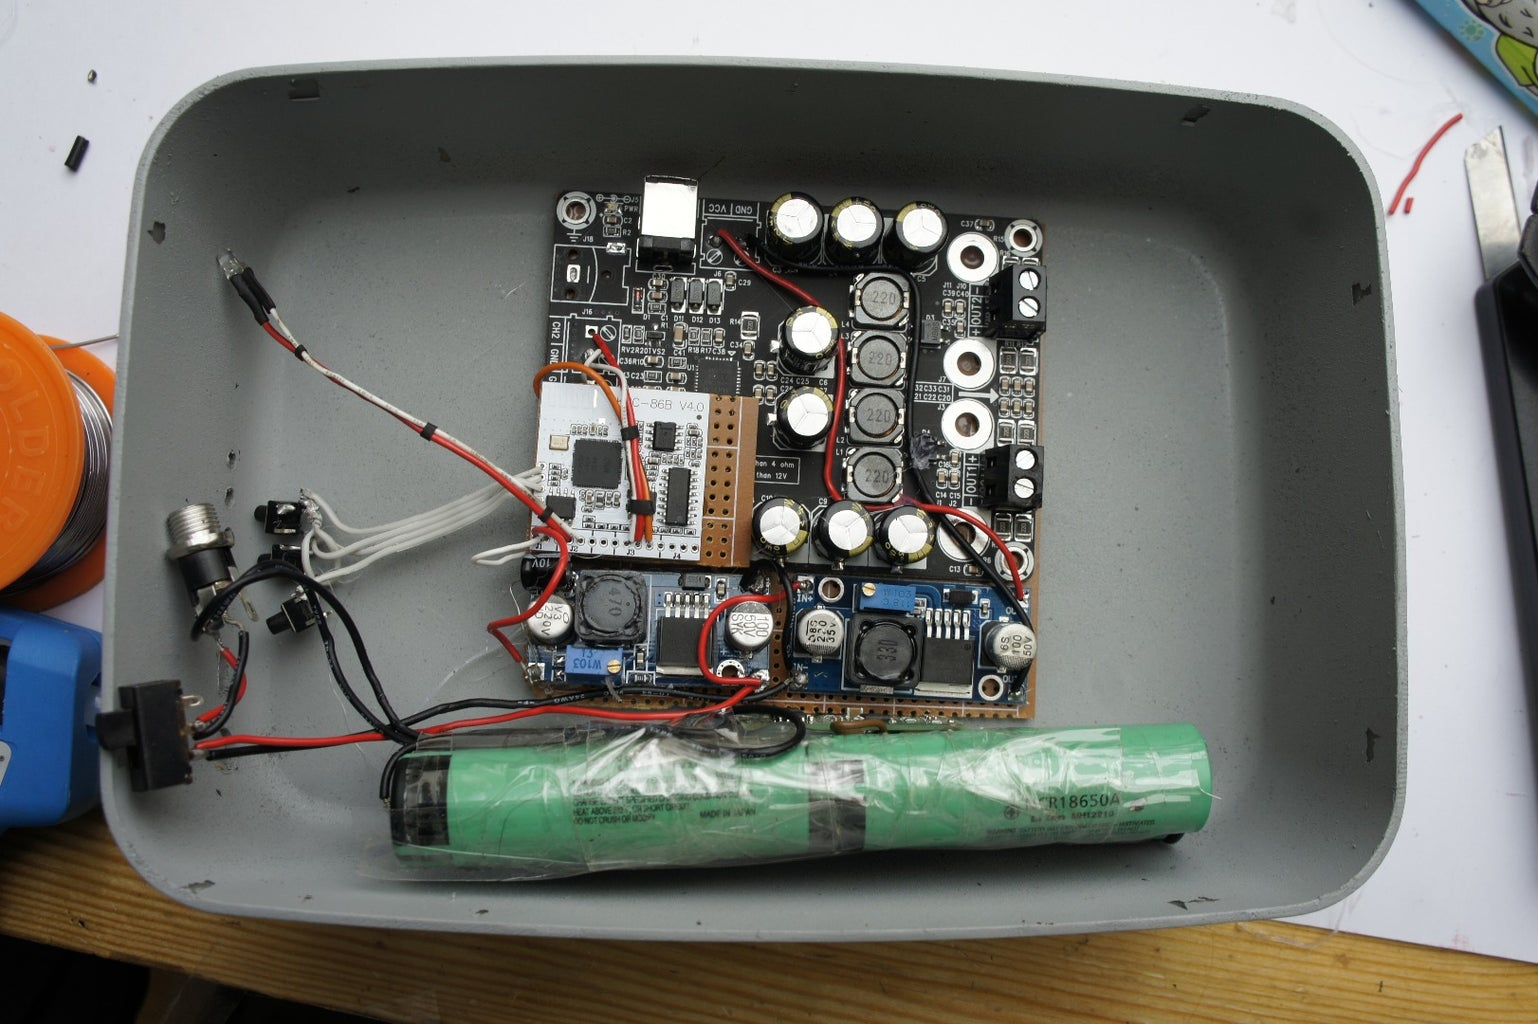 Parts Needed for Portable Speakers: